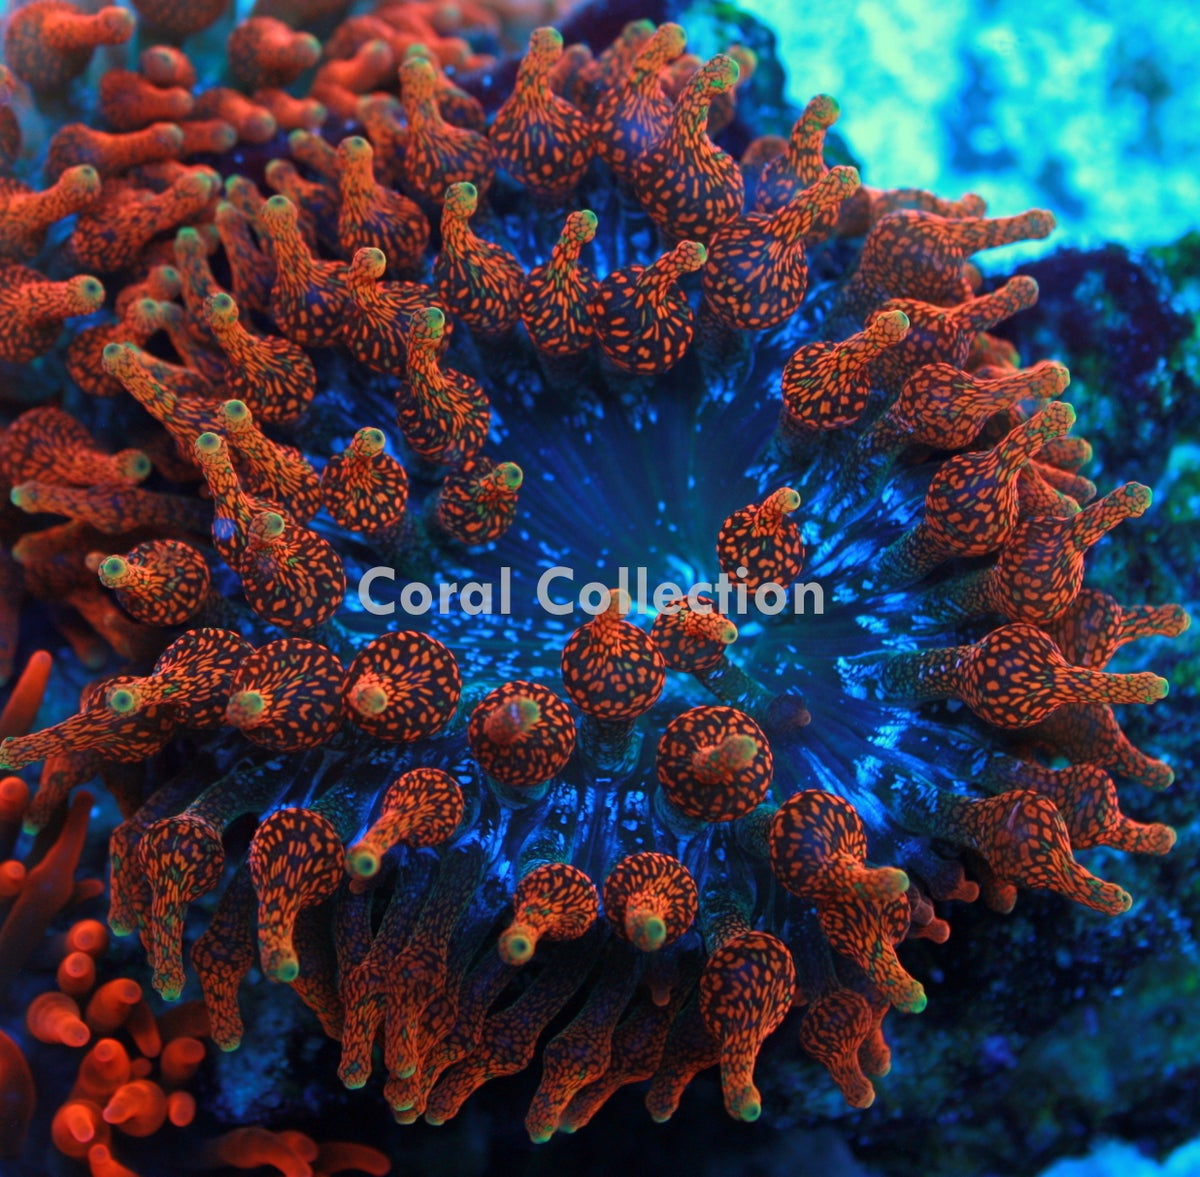 cc supernova bta coral collection